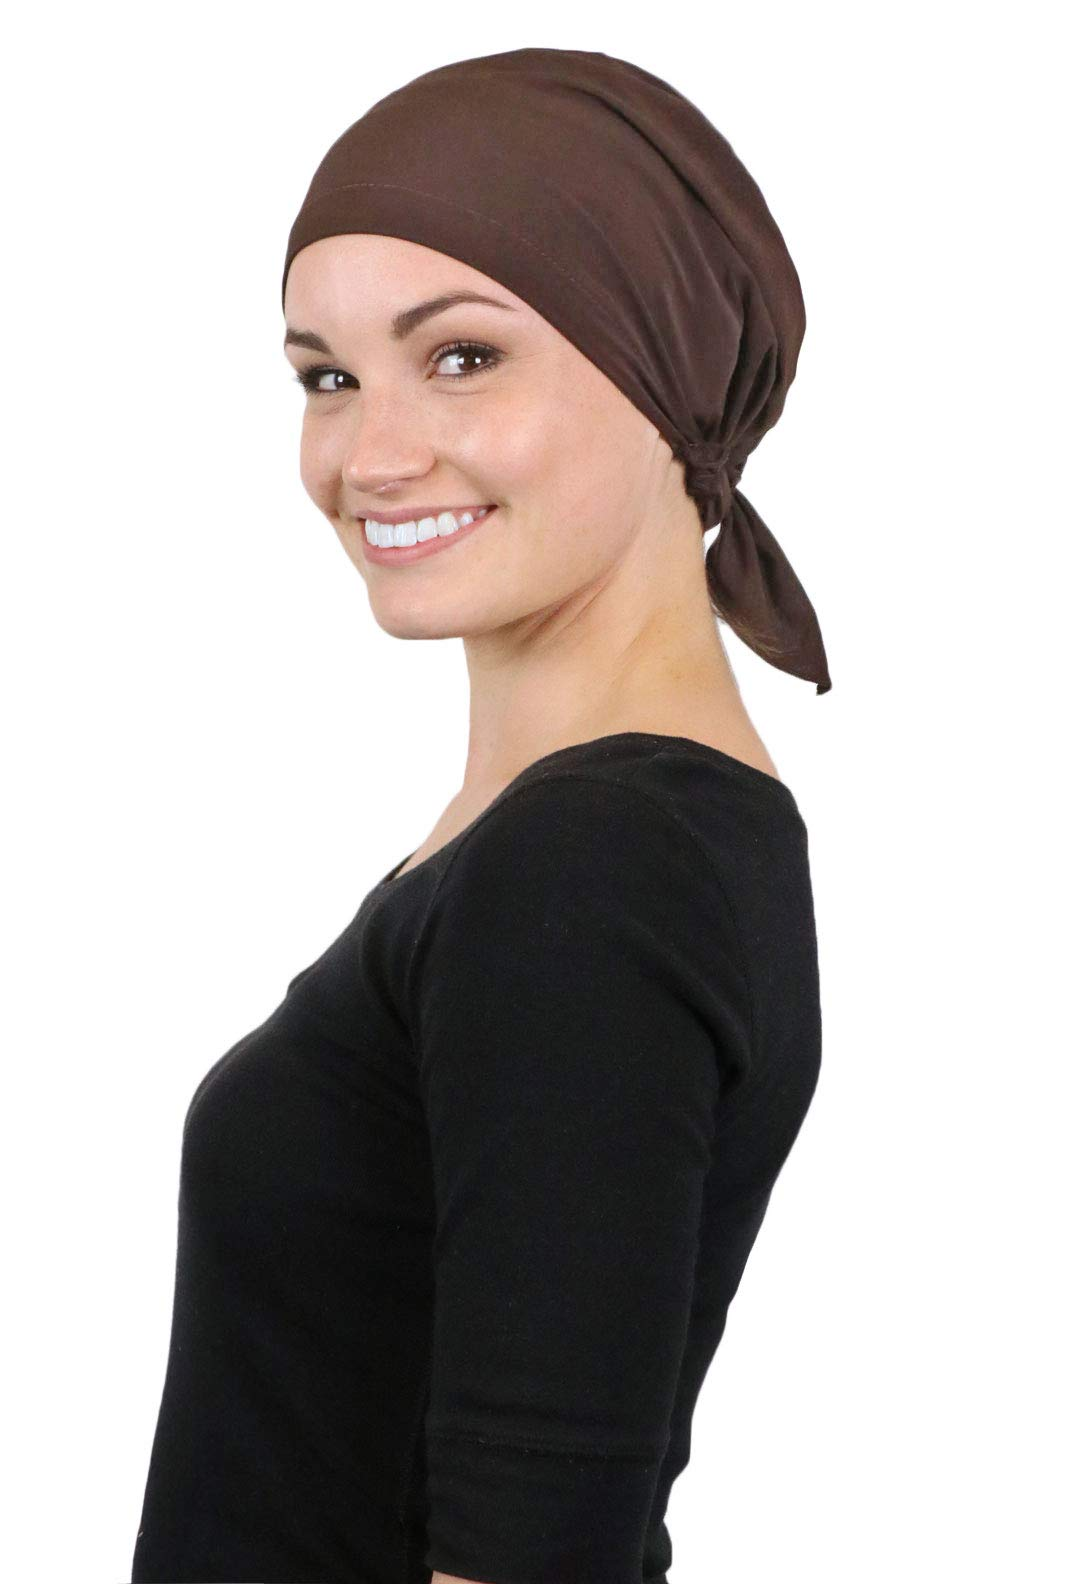 Head Scarf for Women Cancer Headwear Pre Tied Chemo Scarves Cap Coverings Lycra (Brown)